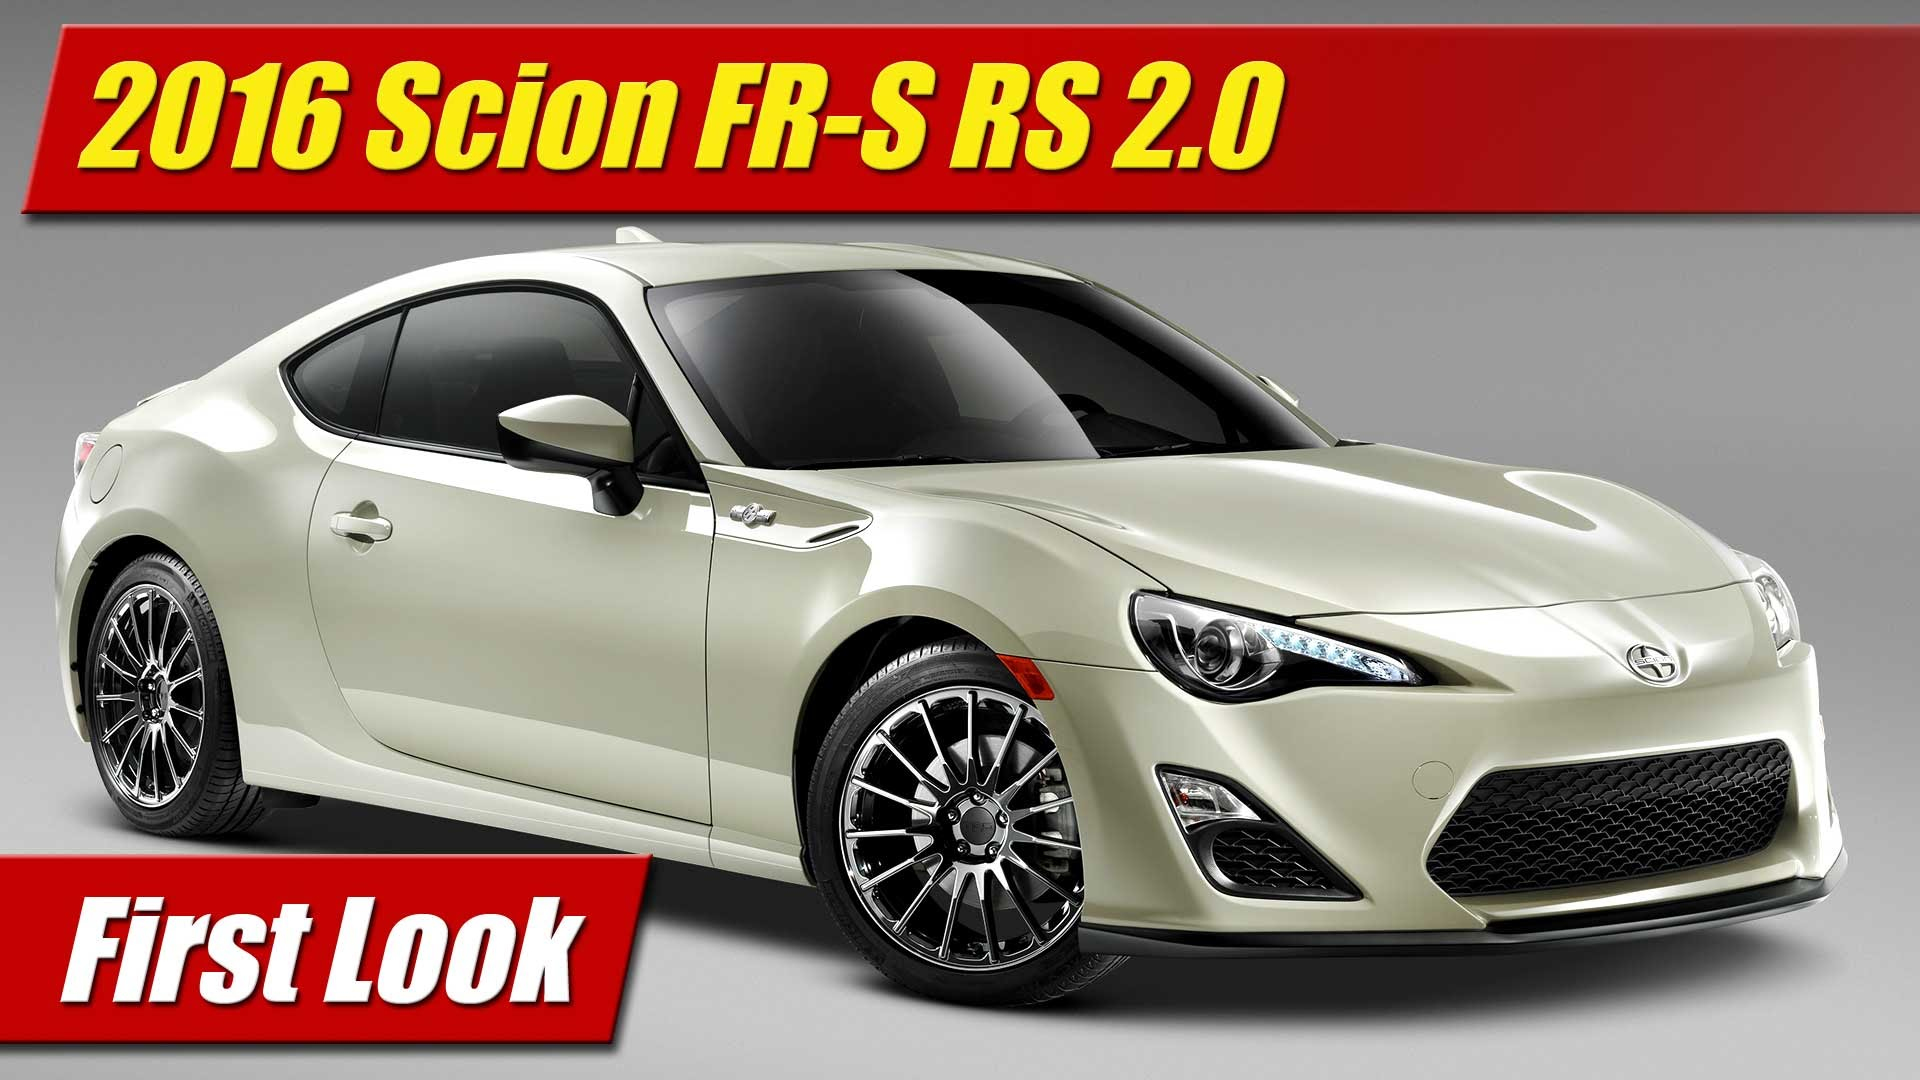 First Look 2016 Scion FRS Release Series 20  TestDrivenTV